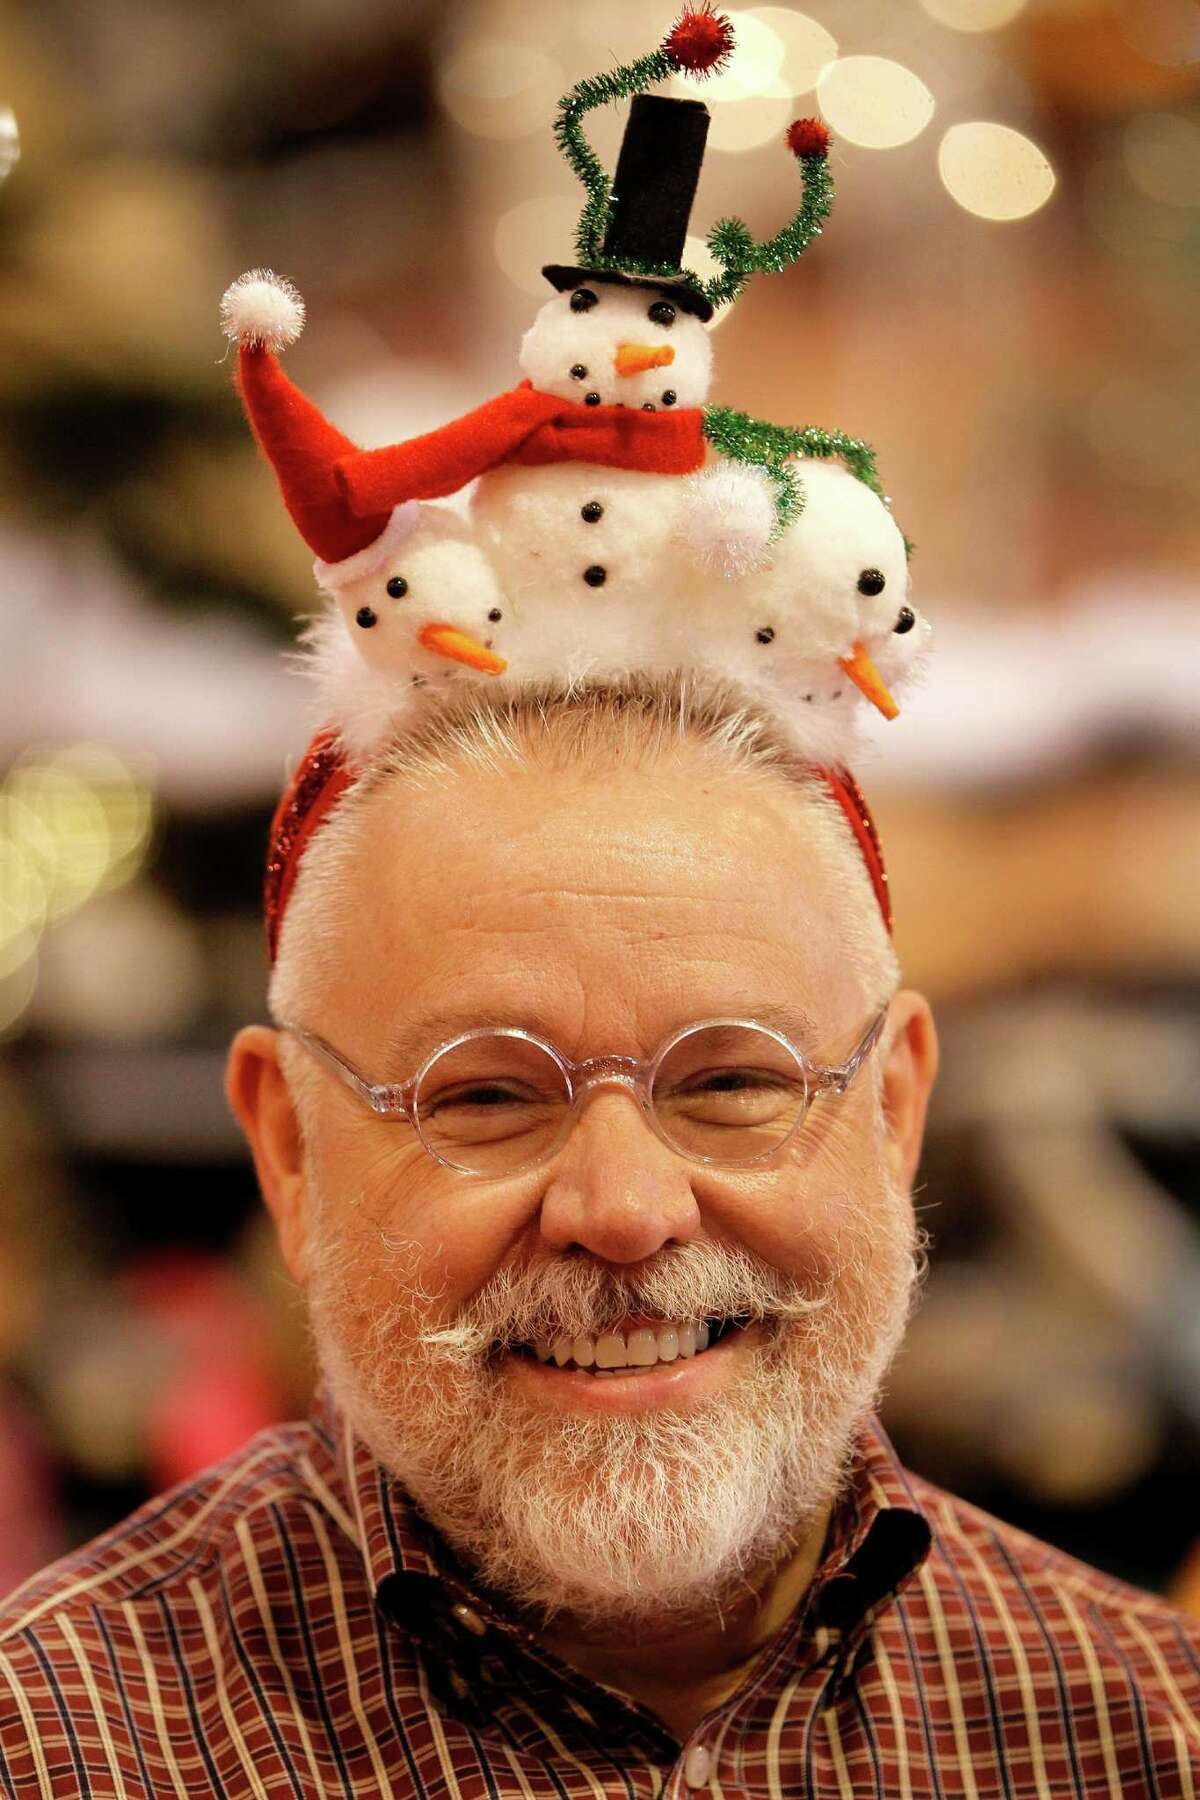 William Houghton wears festive headwear while working in the Campbell Davis Associates booth at the Nutcracker Market on Saturday, Nov. 14, 2015, in Houston.